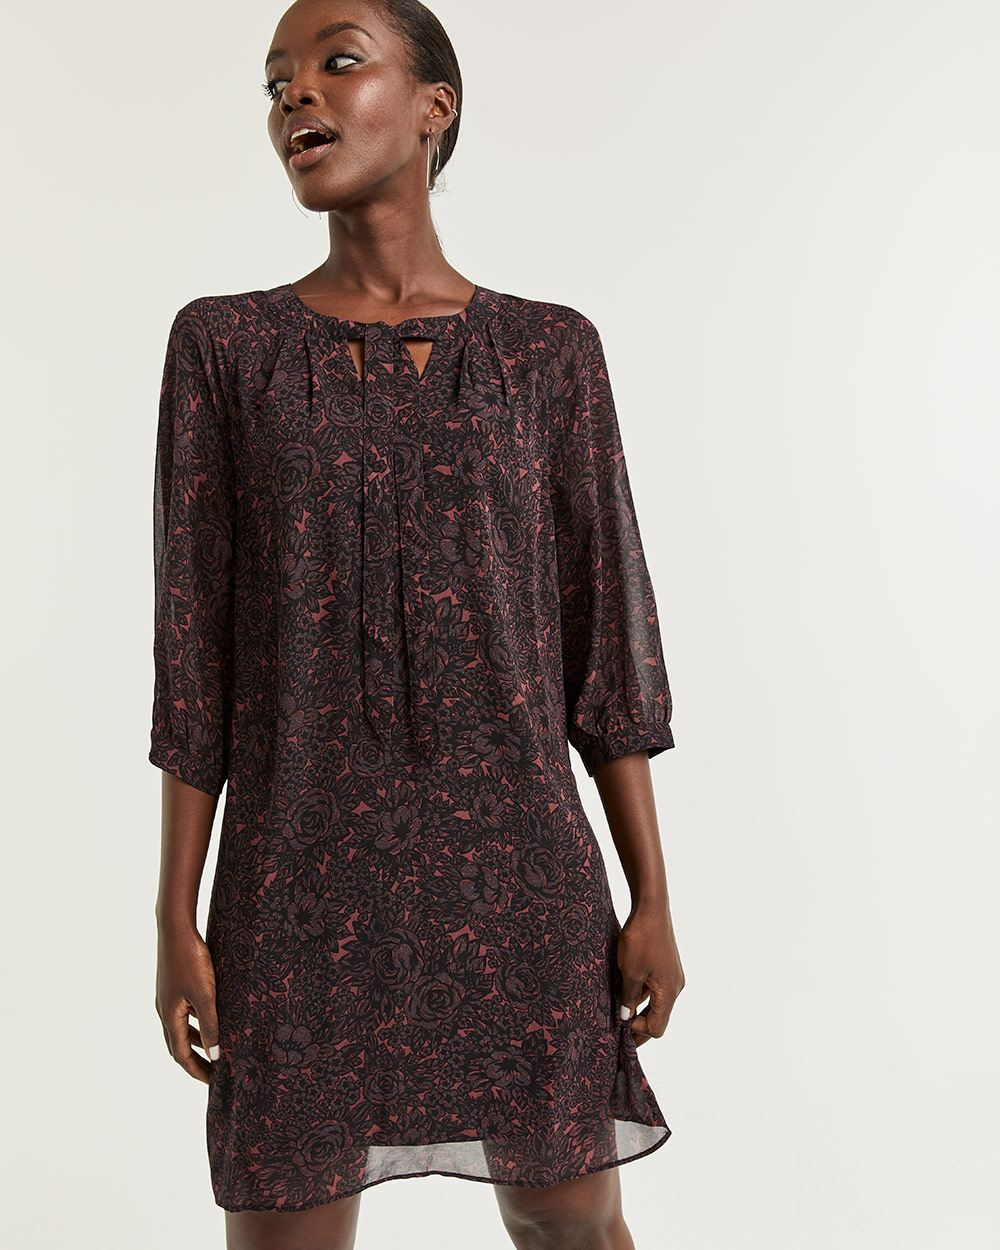 3/4 Sleeve Printed Shift Dress with Tie